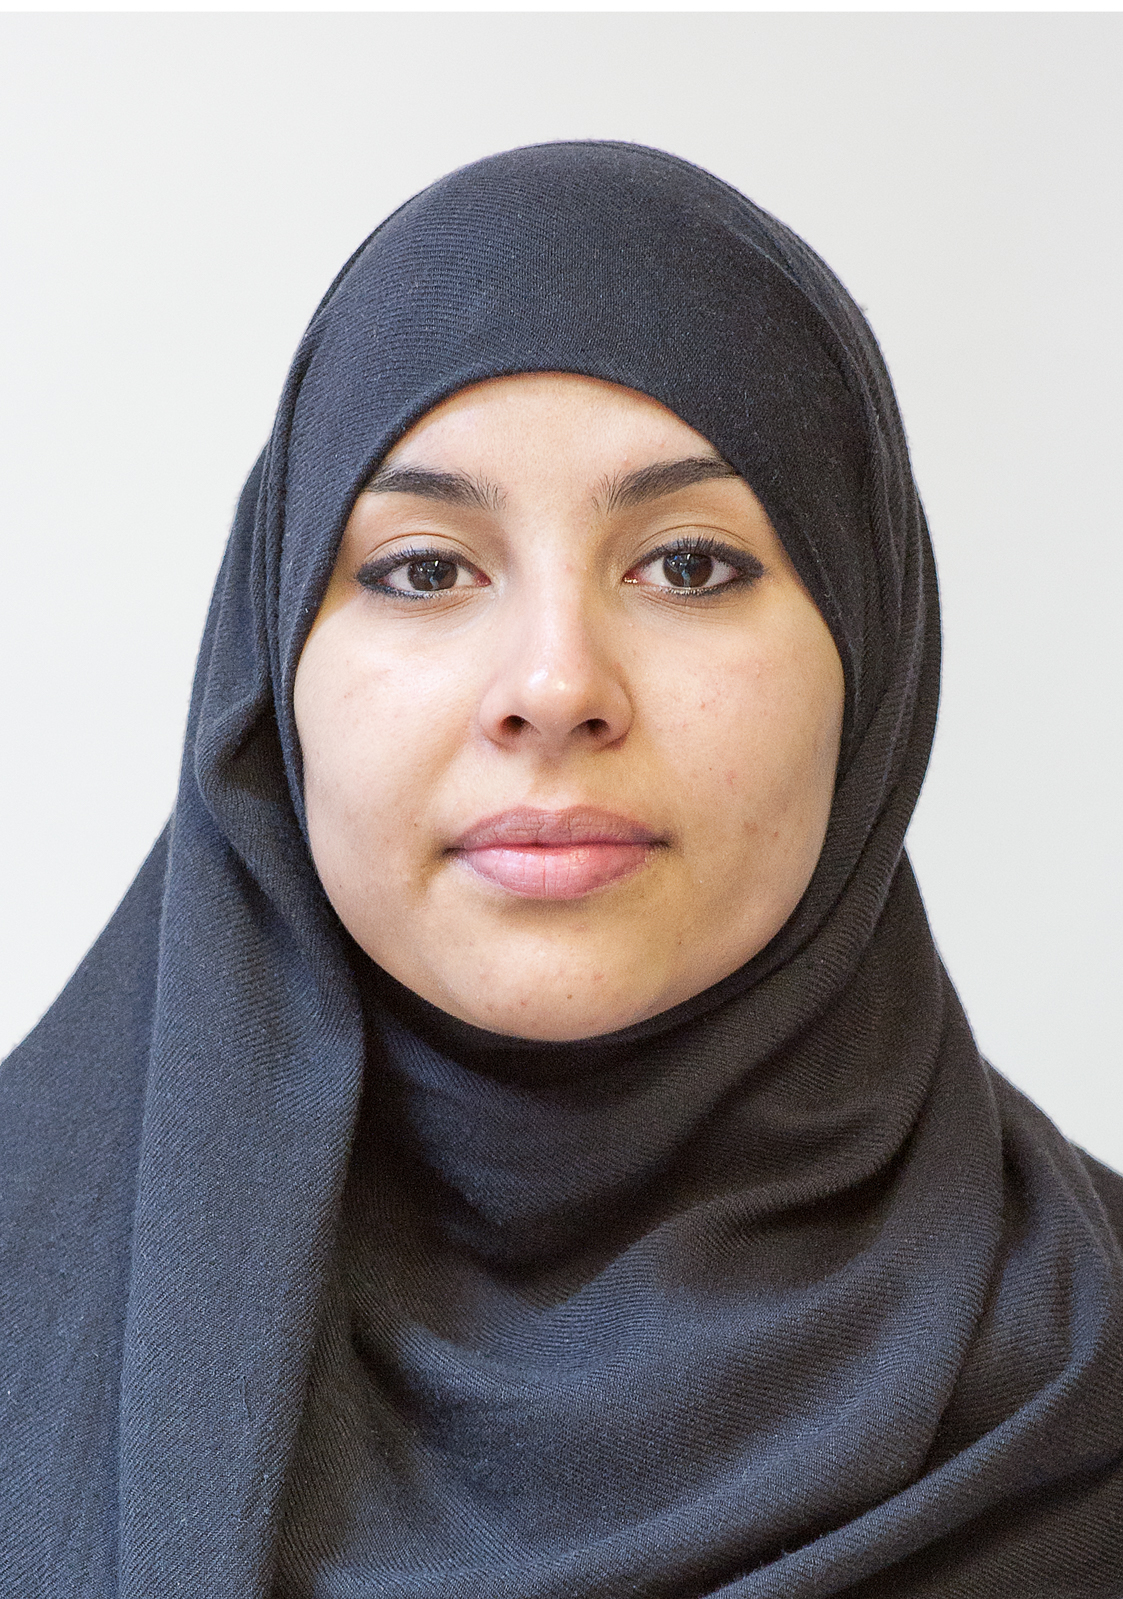 """Karima """"Many people don't know about hospital schools and even on my teacher training course there are people who don't know about them. I remember it being a good experience and a supportive and friendly environment."""""""